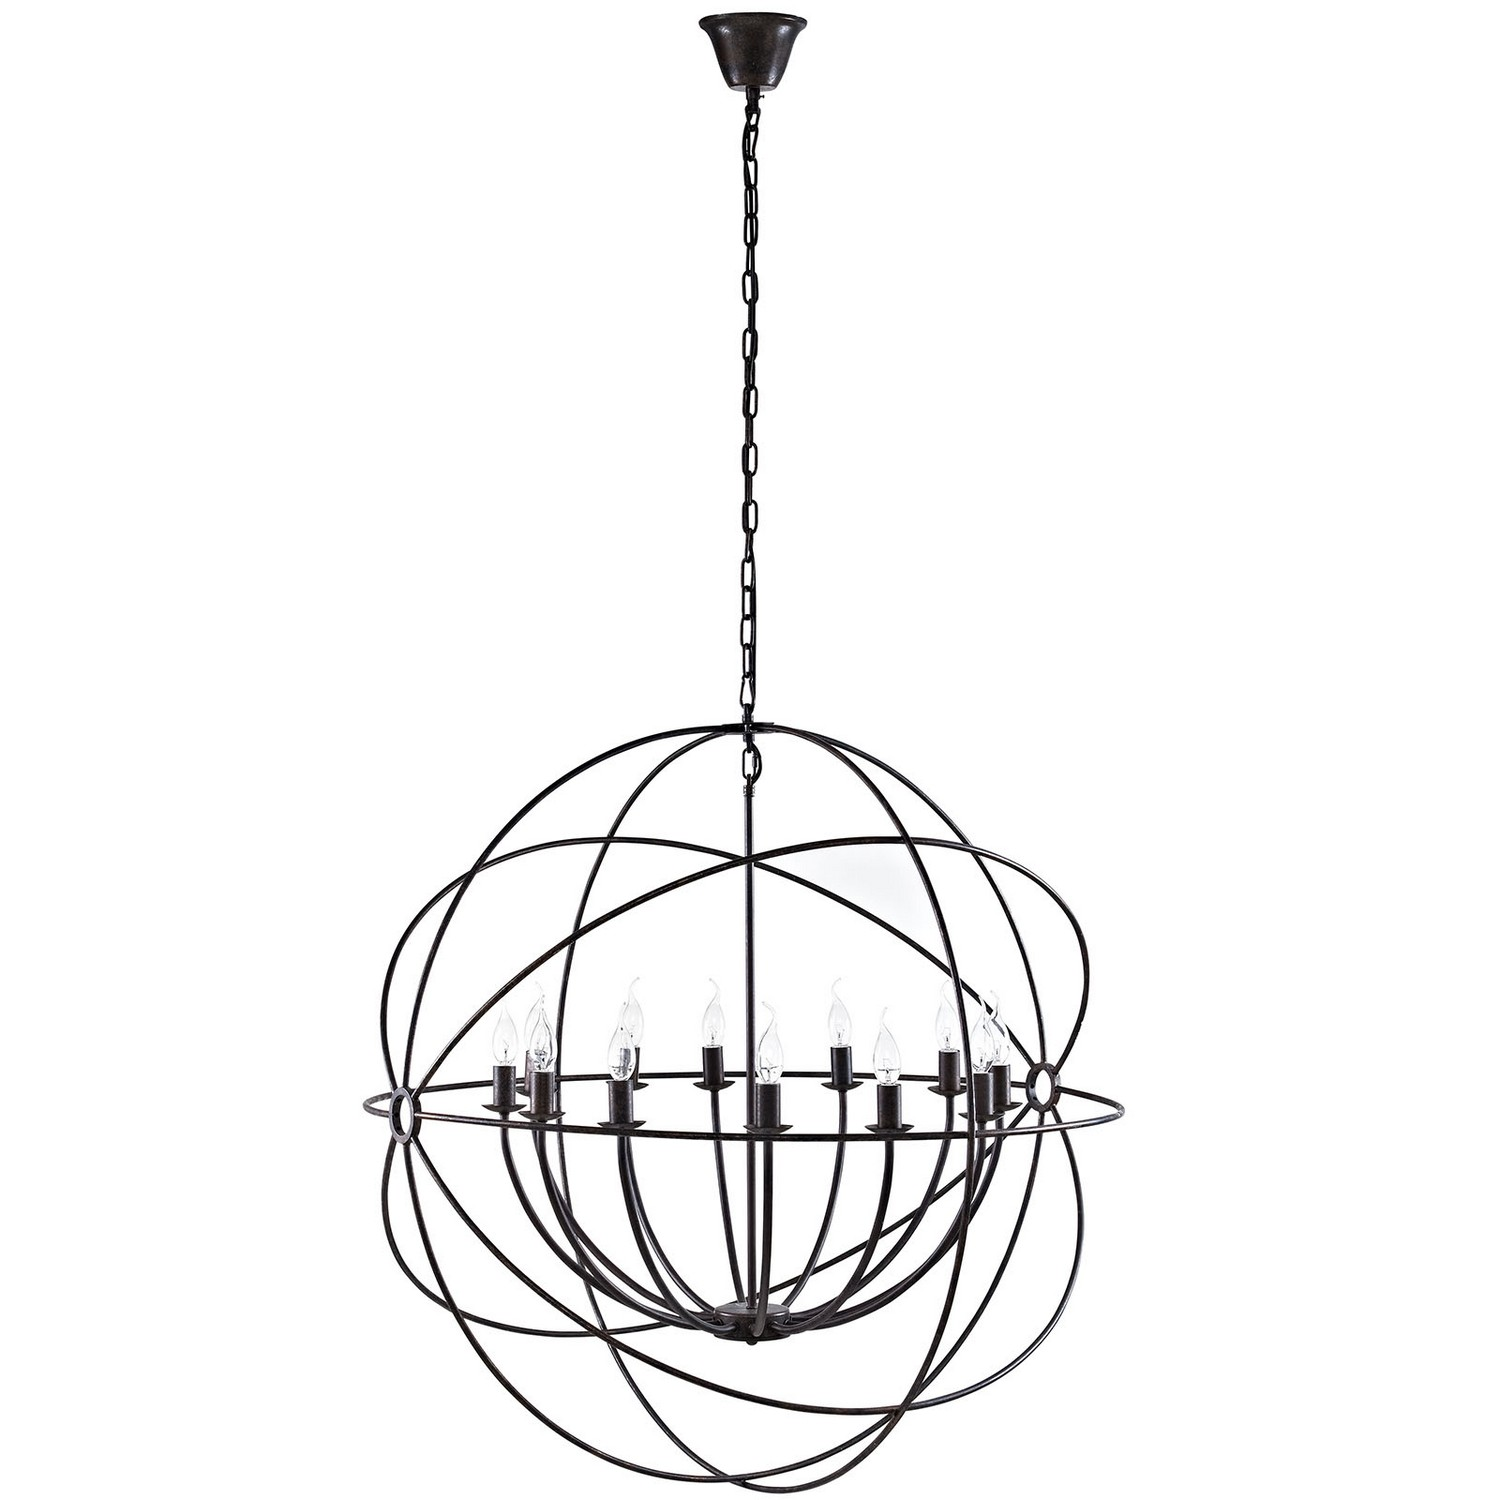 Modway Atom 39.5-inch Chandelier - Brown